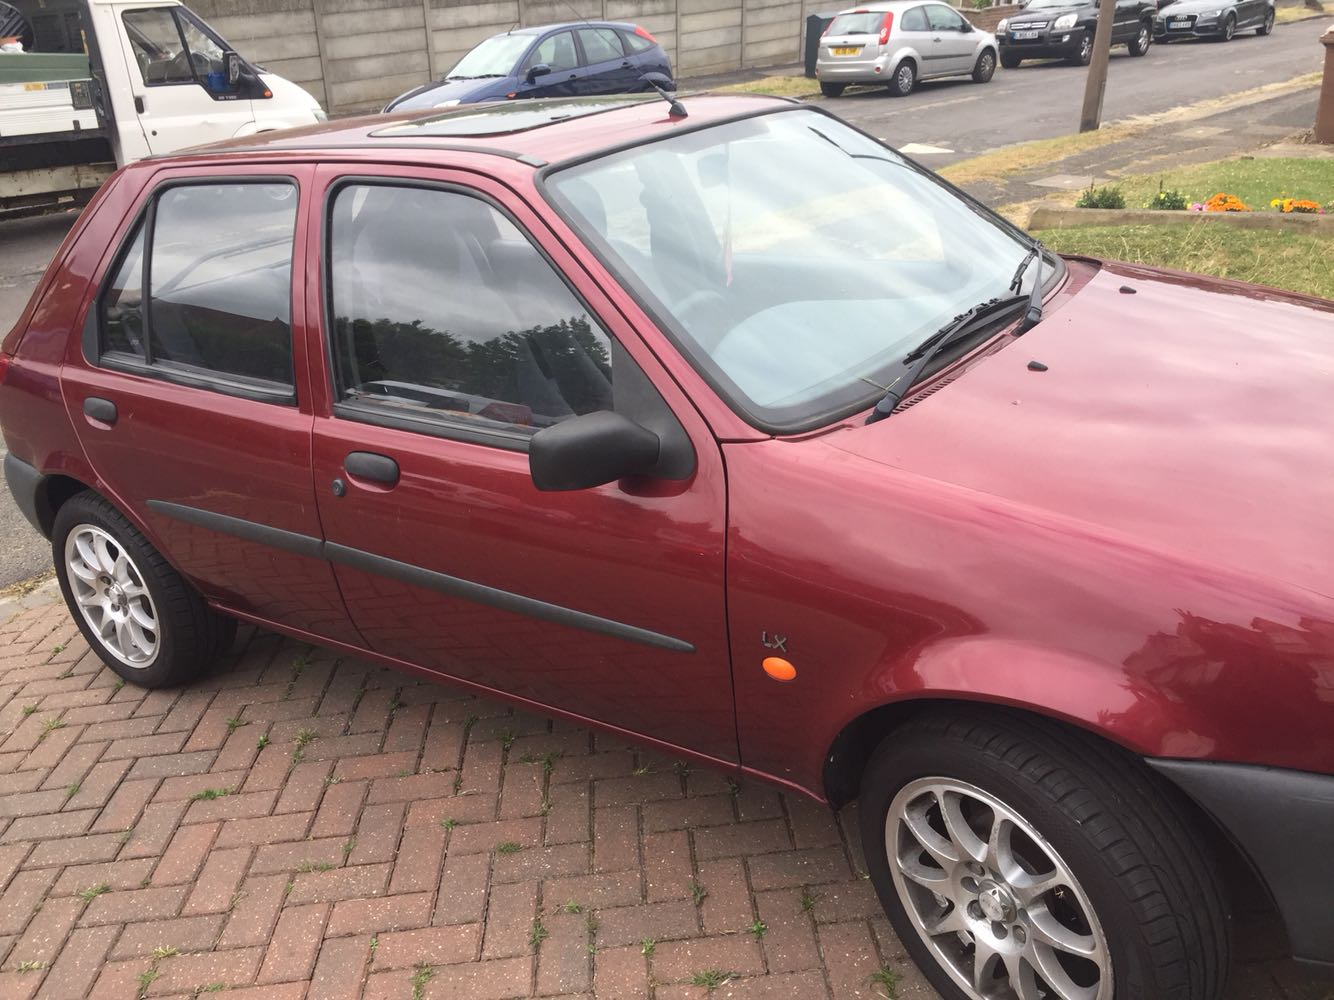 Great little city car 1997 Ford Fiesta  long MOT - Larkswood, London - Good runner with nice rims and (almost) new tyres. Shows its age but still good for a couple more years. MOT until end of APRIL 2018 and cheap to insure. A few rusty spots and some other signs of wear and tear (see pictures). On the br - Larkswood, London